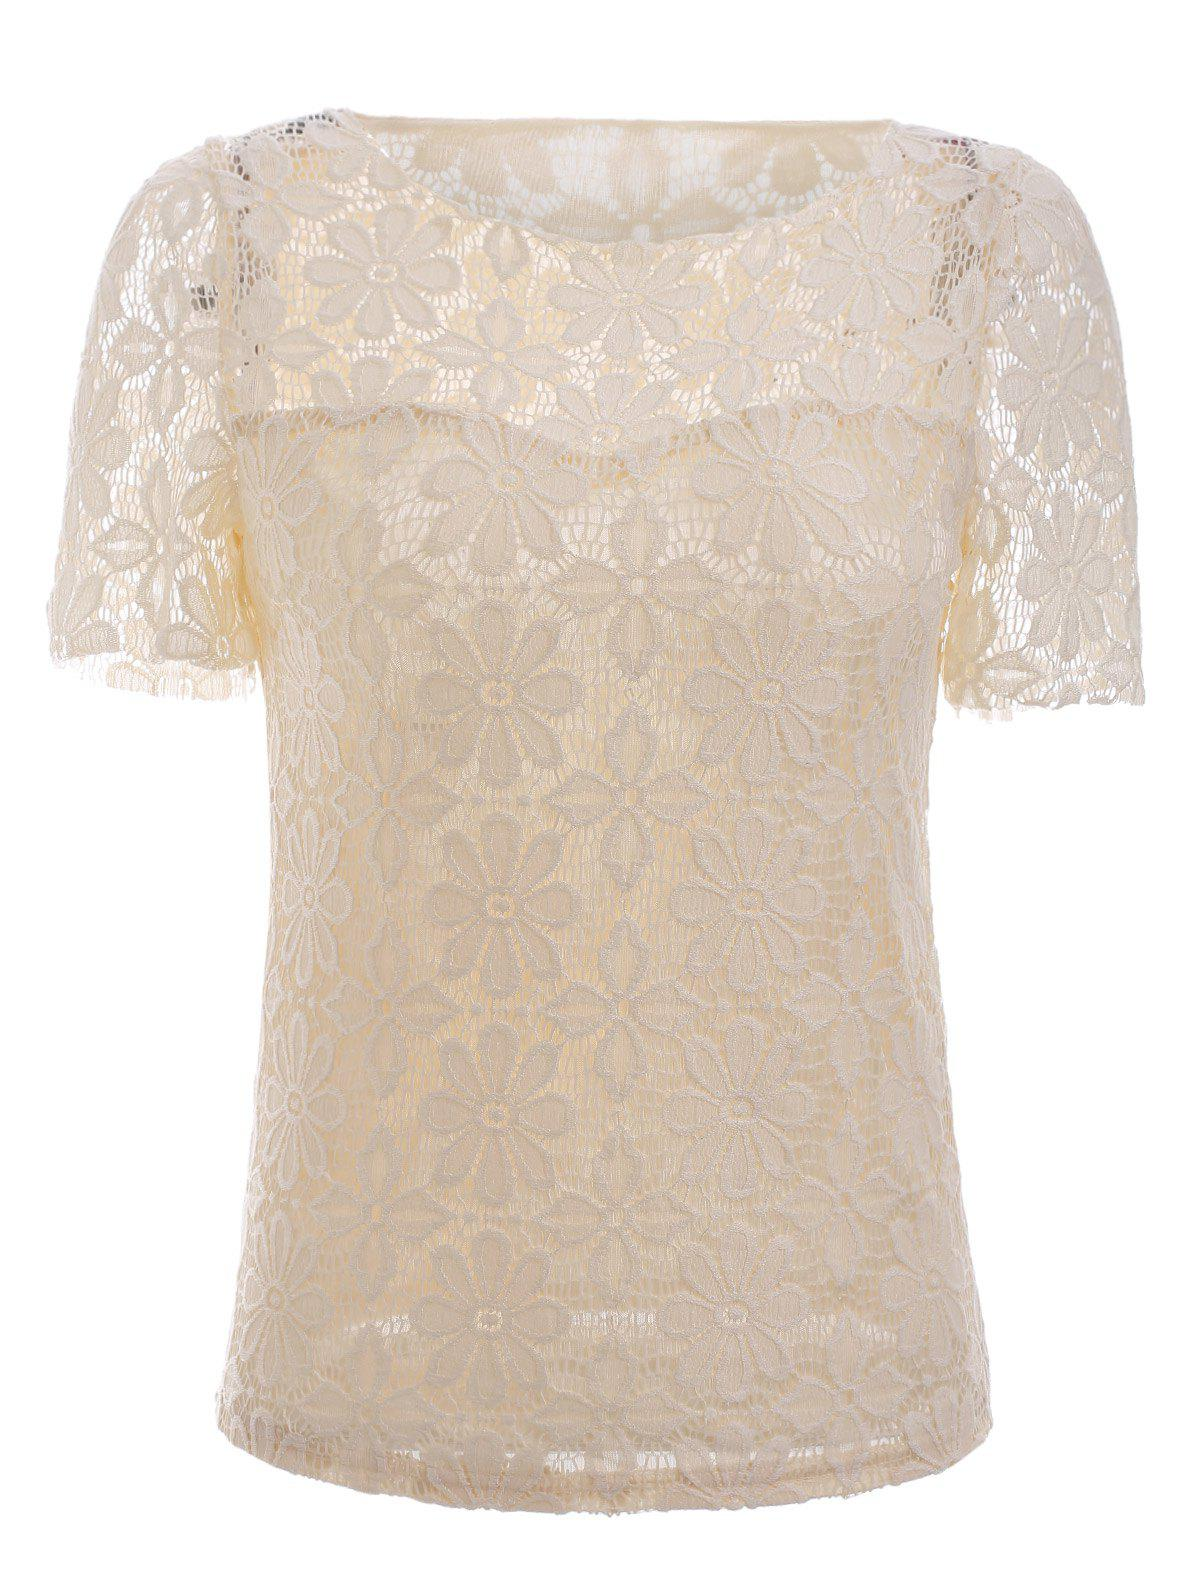 Trendy Short Sleeve Translucent Floral Embroidered Lace Blouse - LIGHT APRICOT 5XL